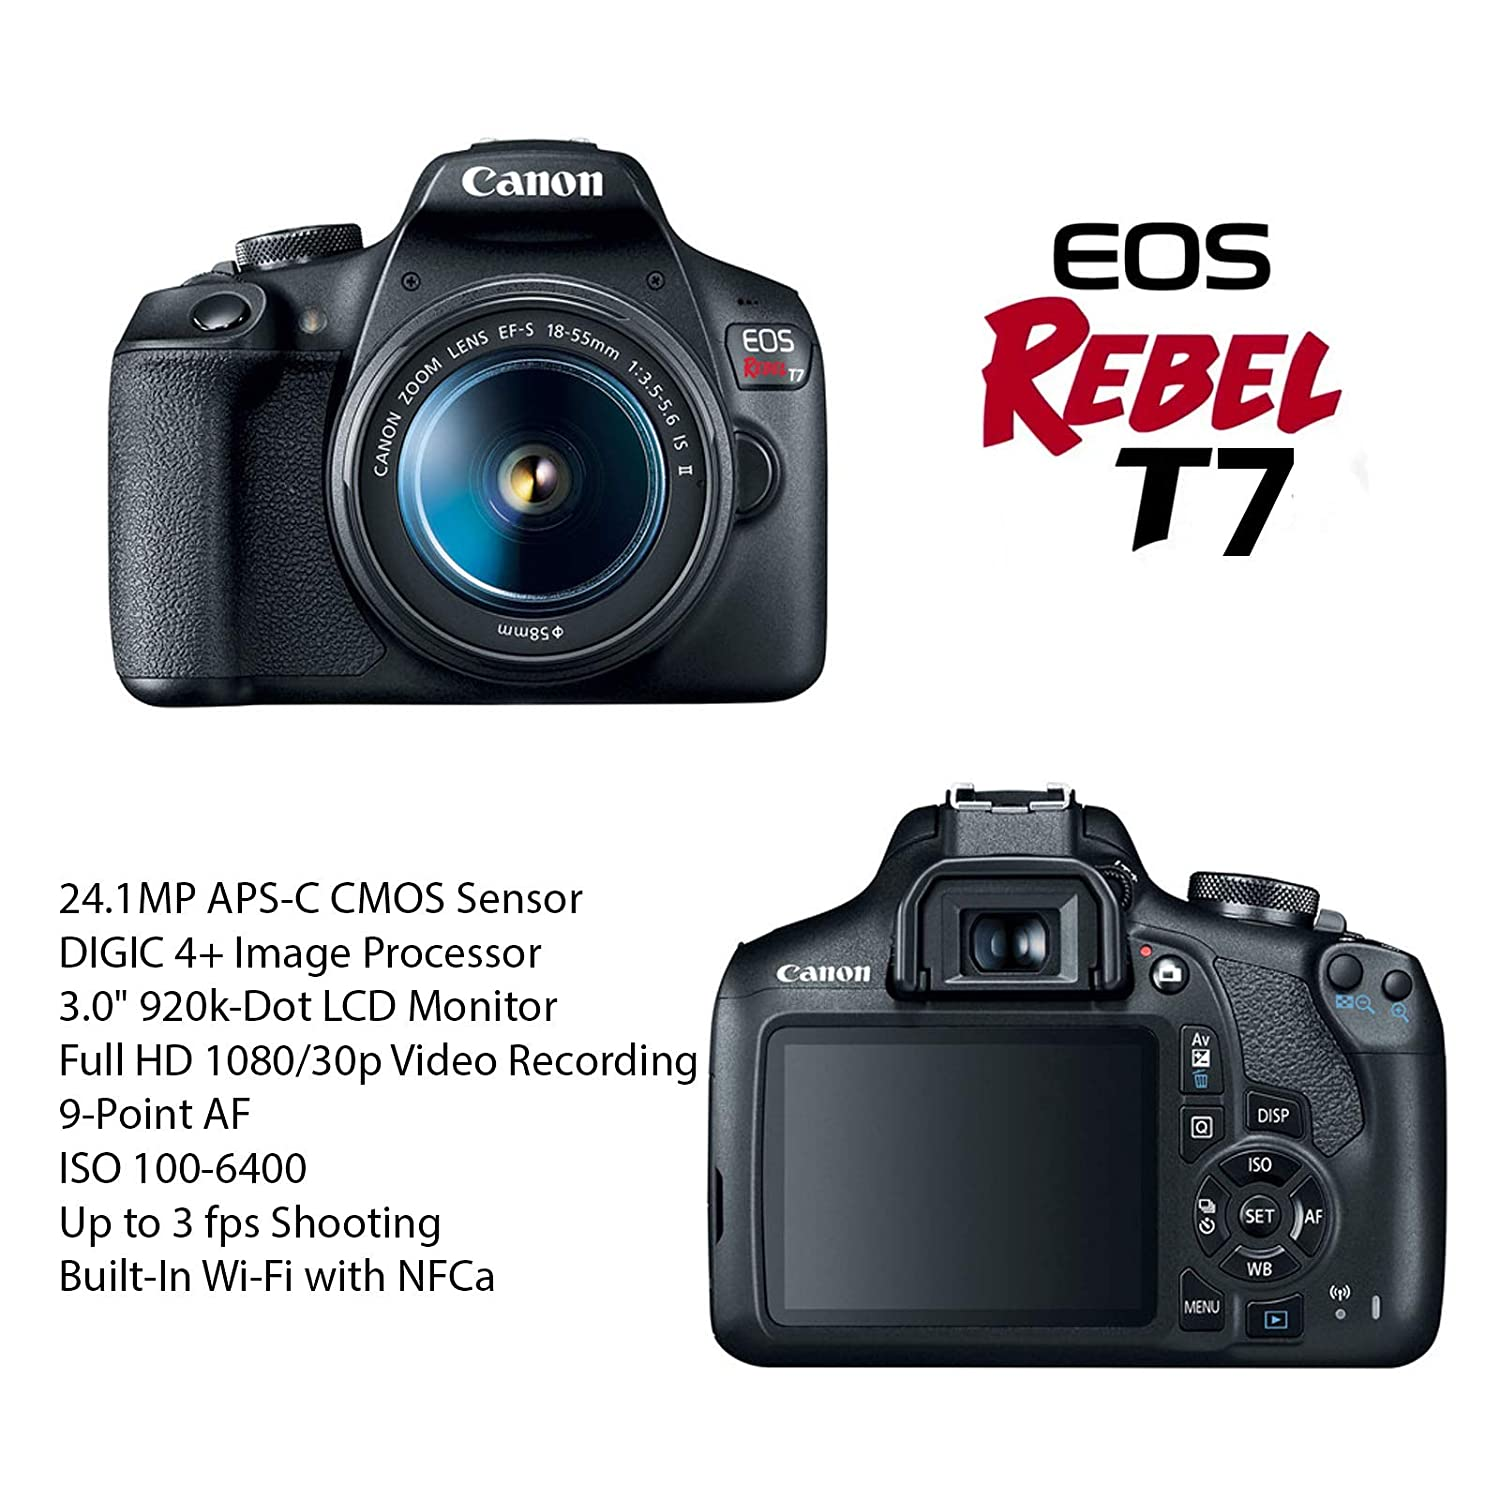 Canon EOS Rebel T7 Review